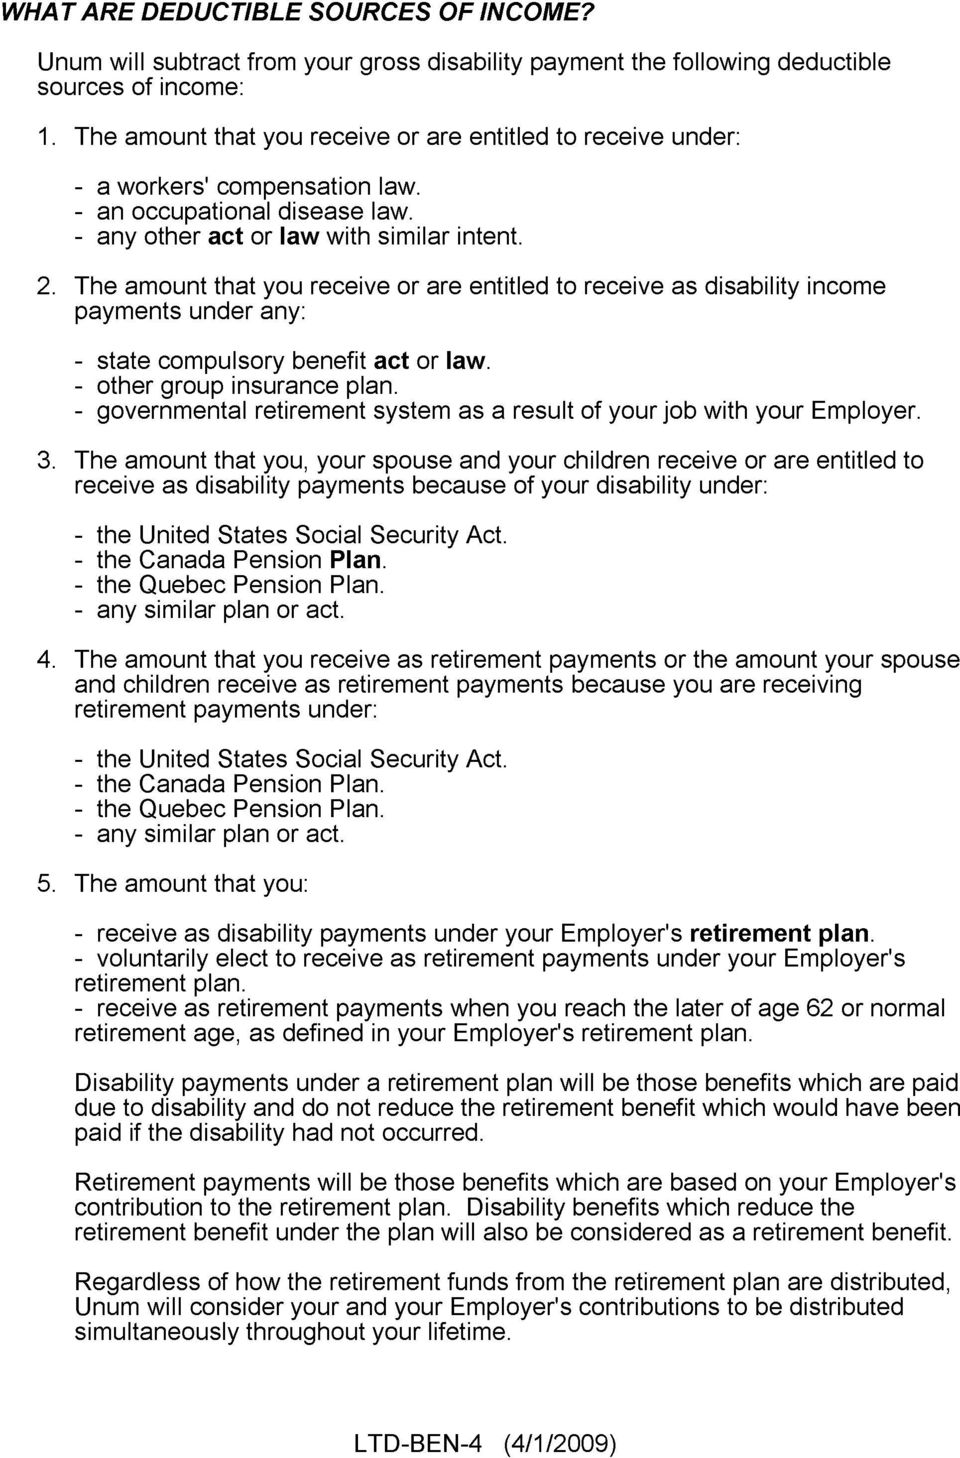 The amount that you receive or are entitled to receive as disability income payments under any: - state compulsory benefit act or law. - other group insurance plan.